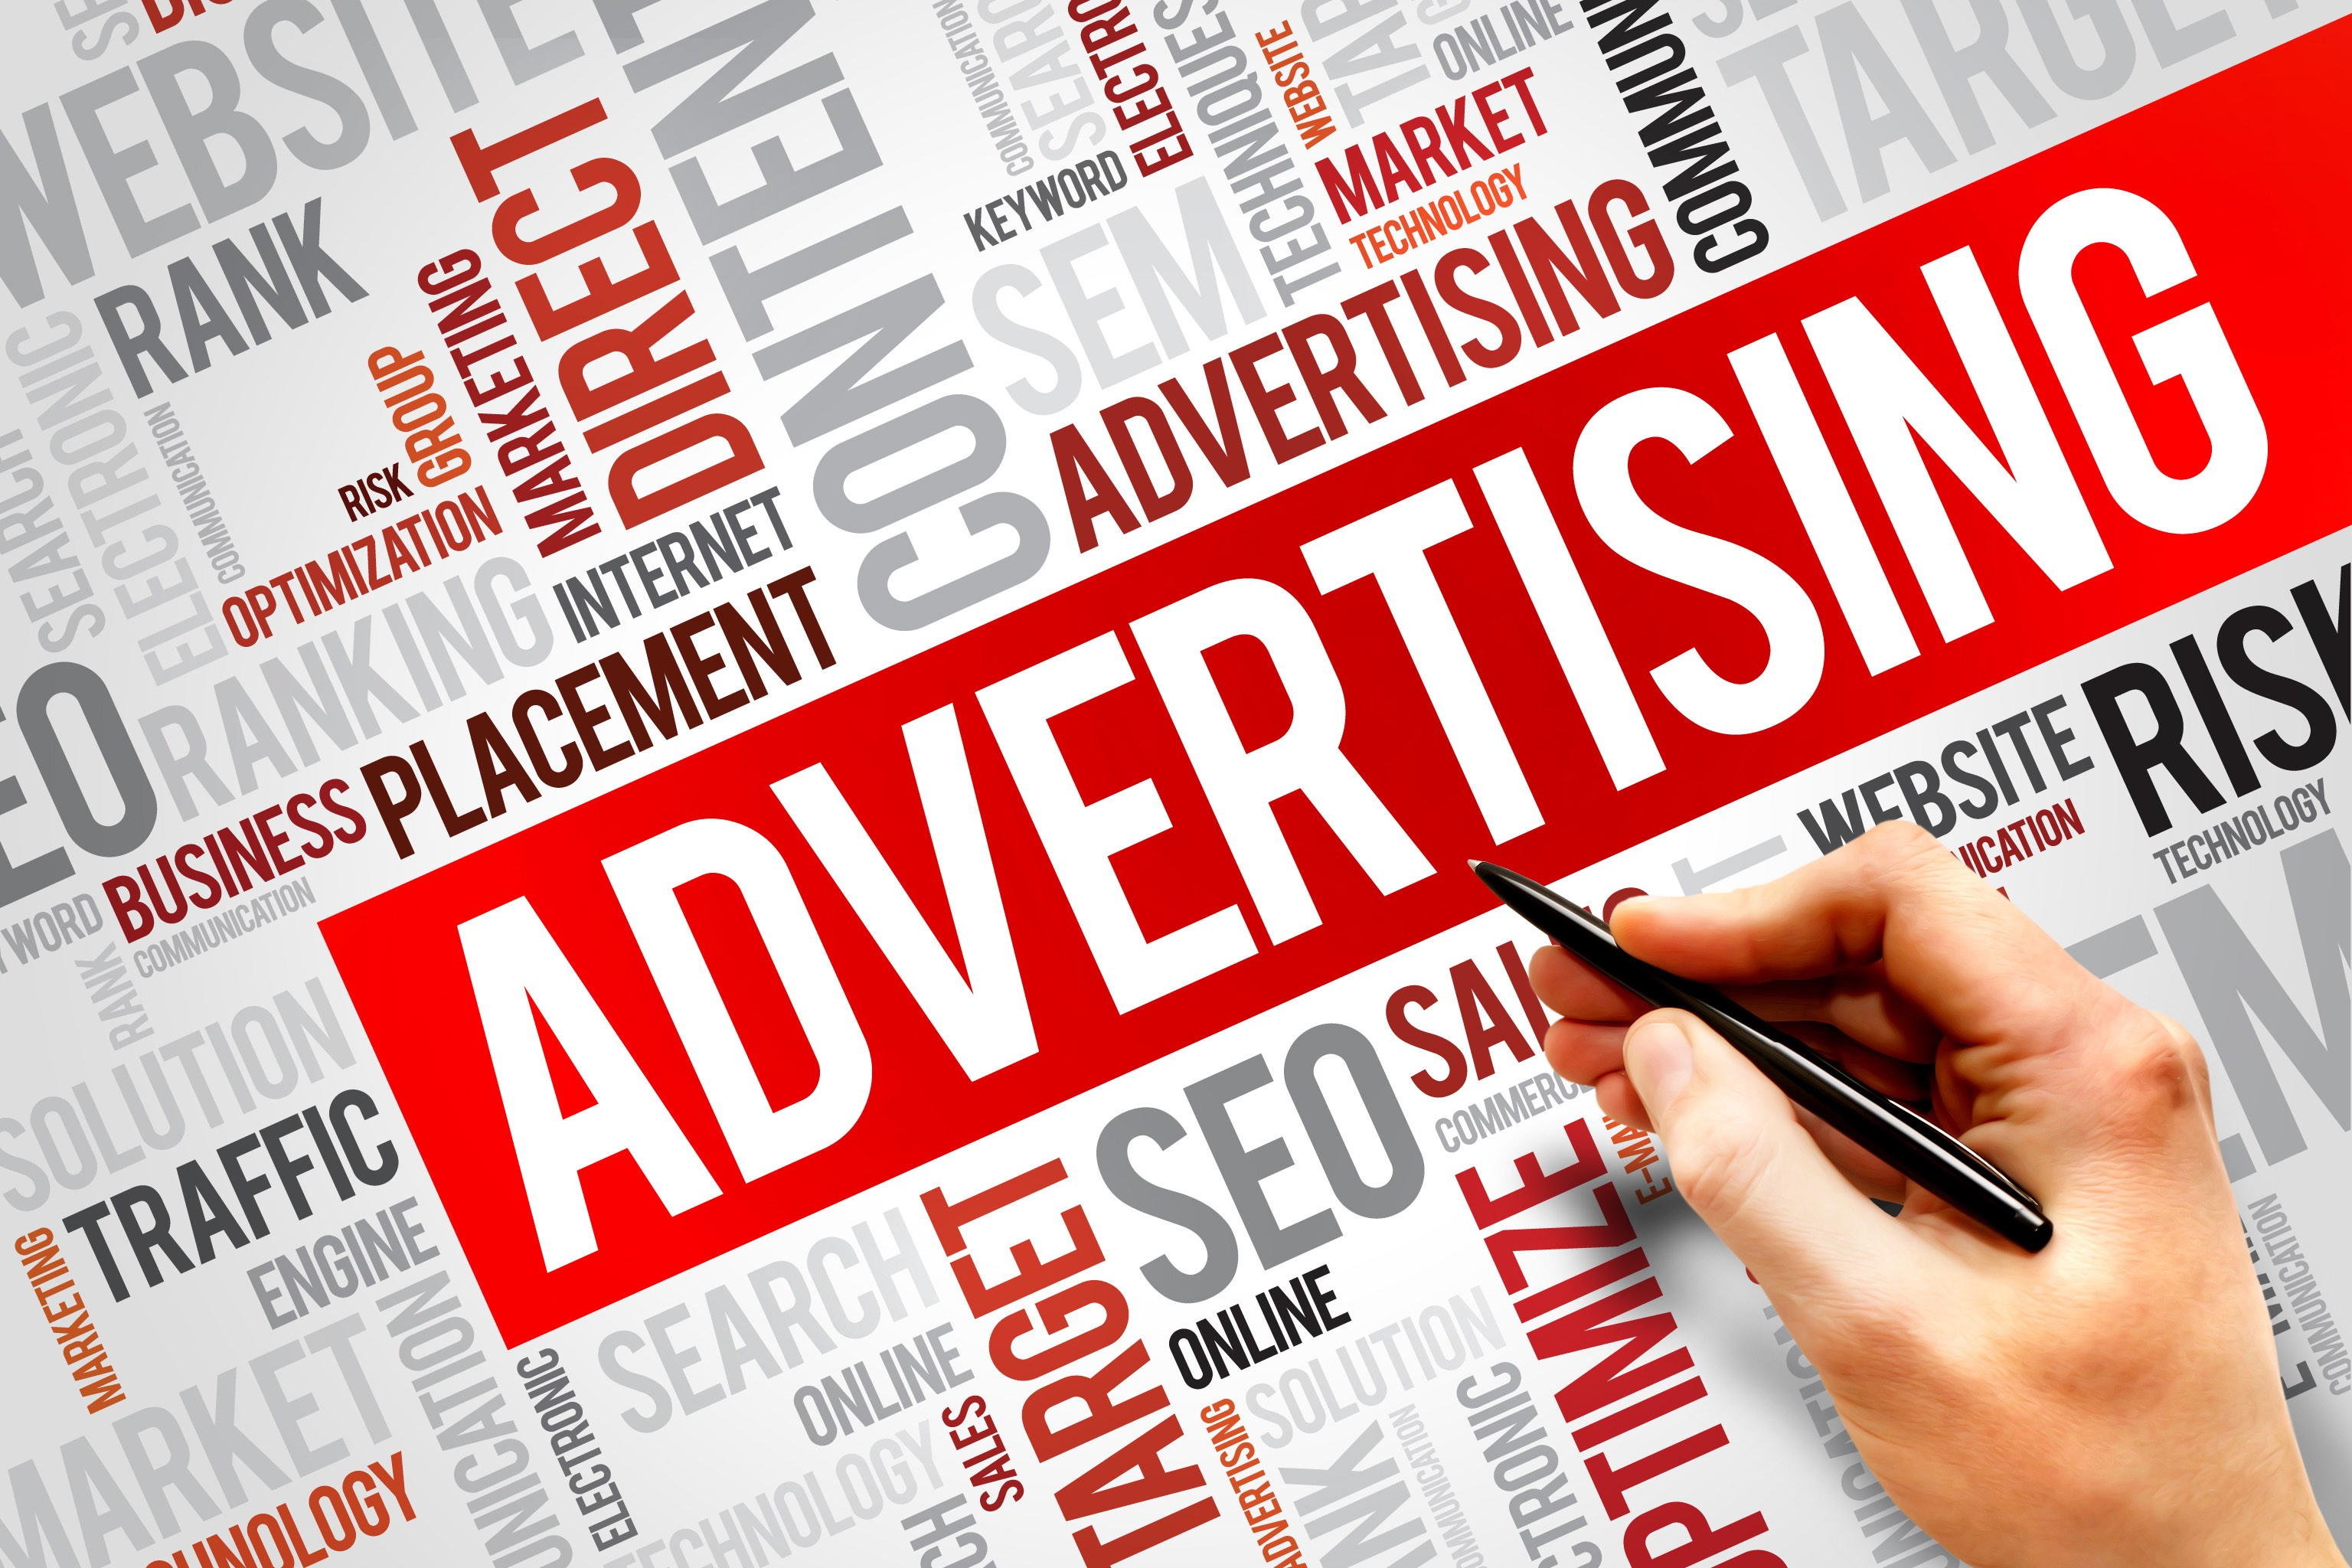 Mobile Advertising IS The Most Convenient Marketing Tool For Advertisers